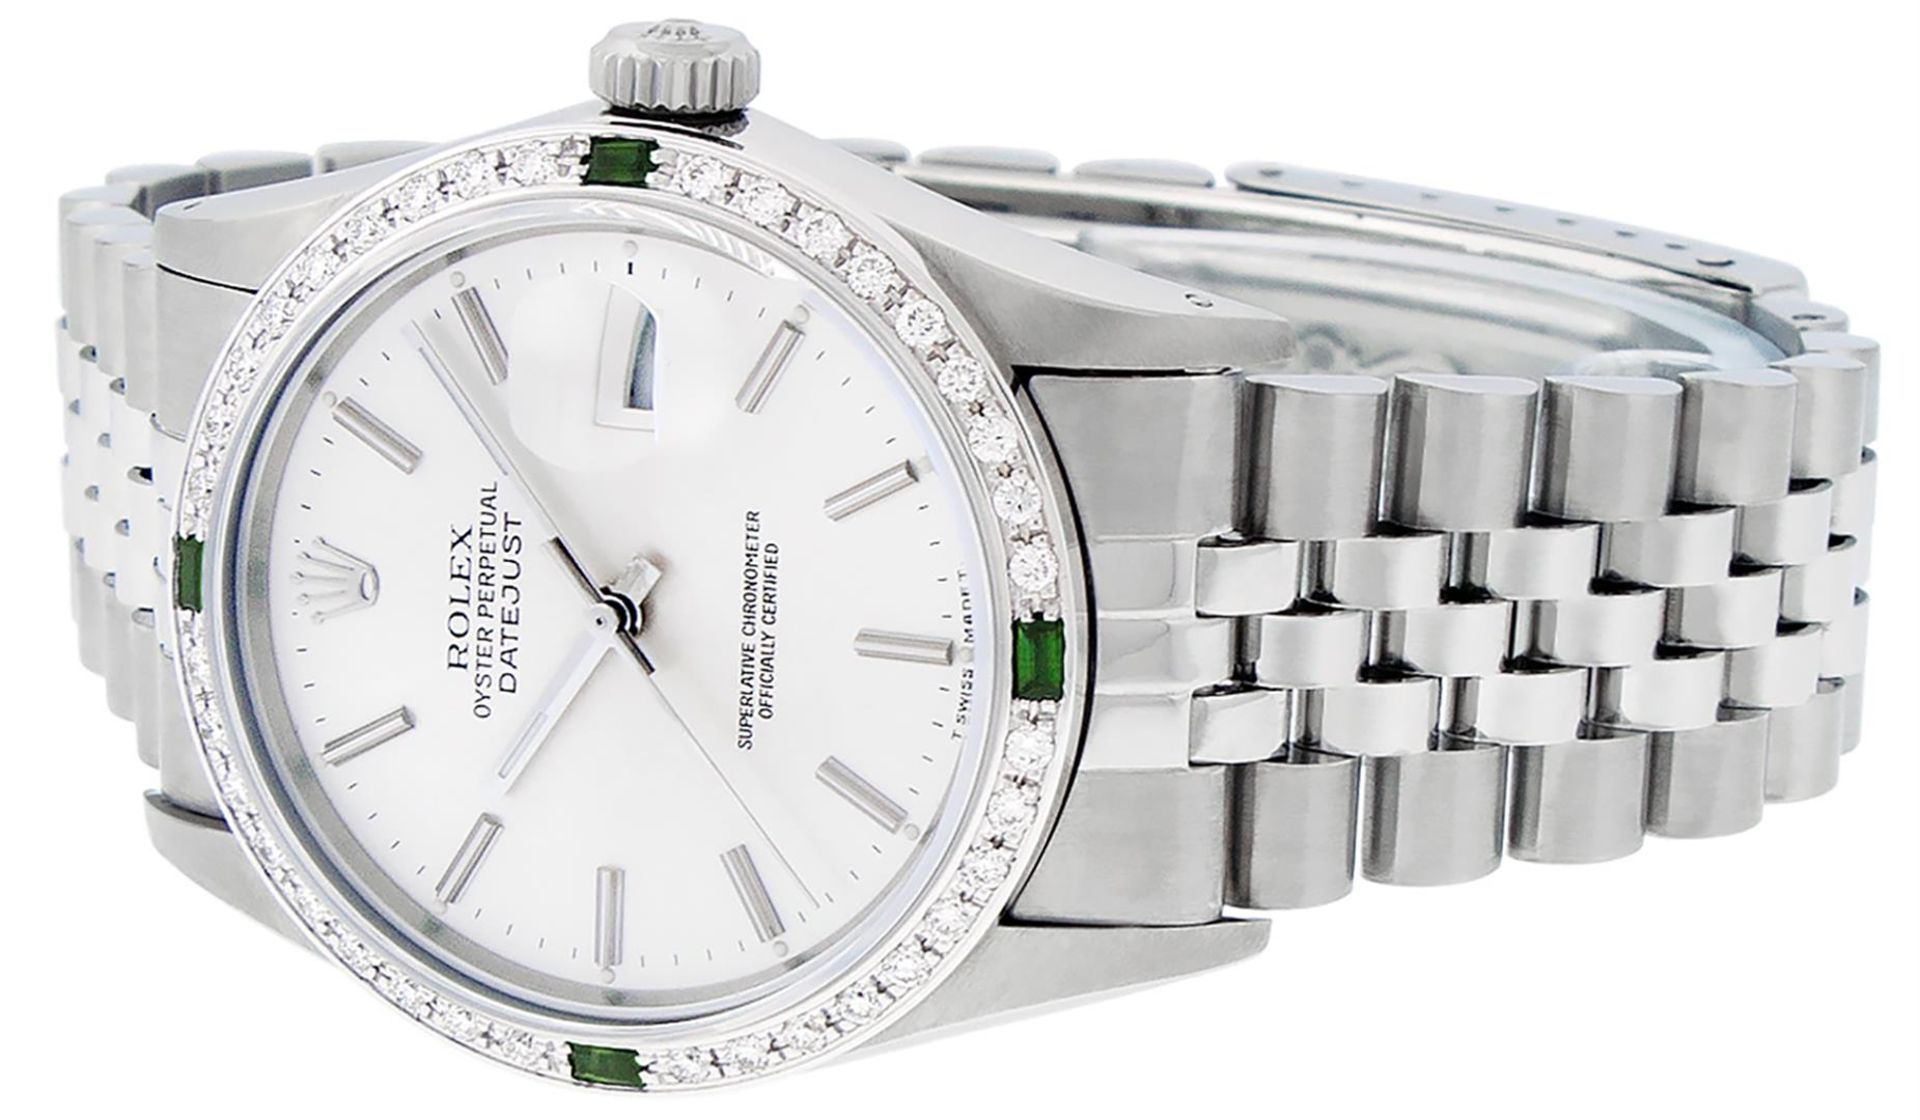 Rolex Mens Stainless Steel Silver Index Diamond 36MM Datejust Wristwatch - Image 2 of 9